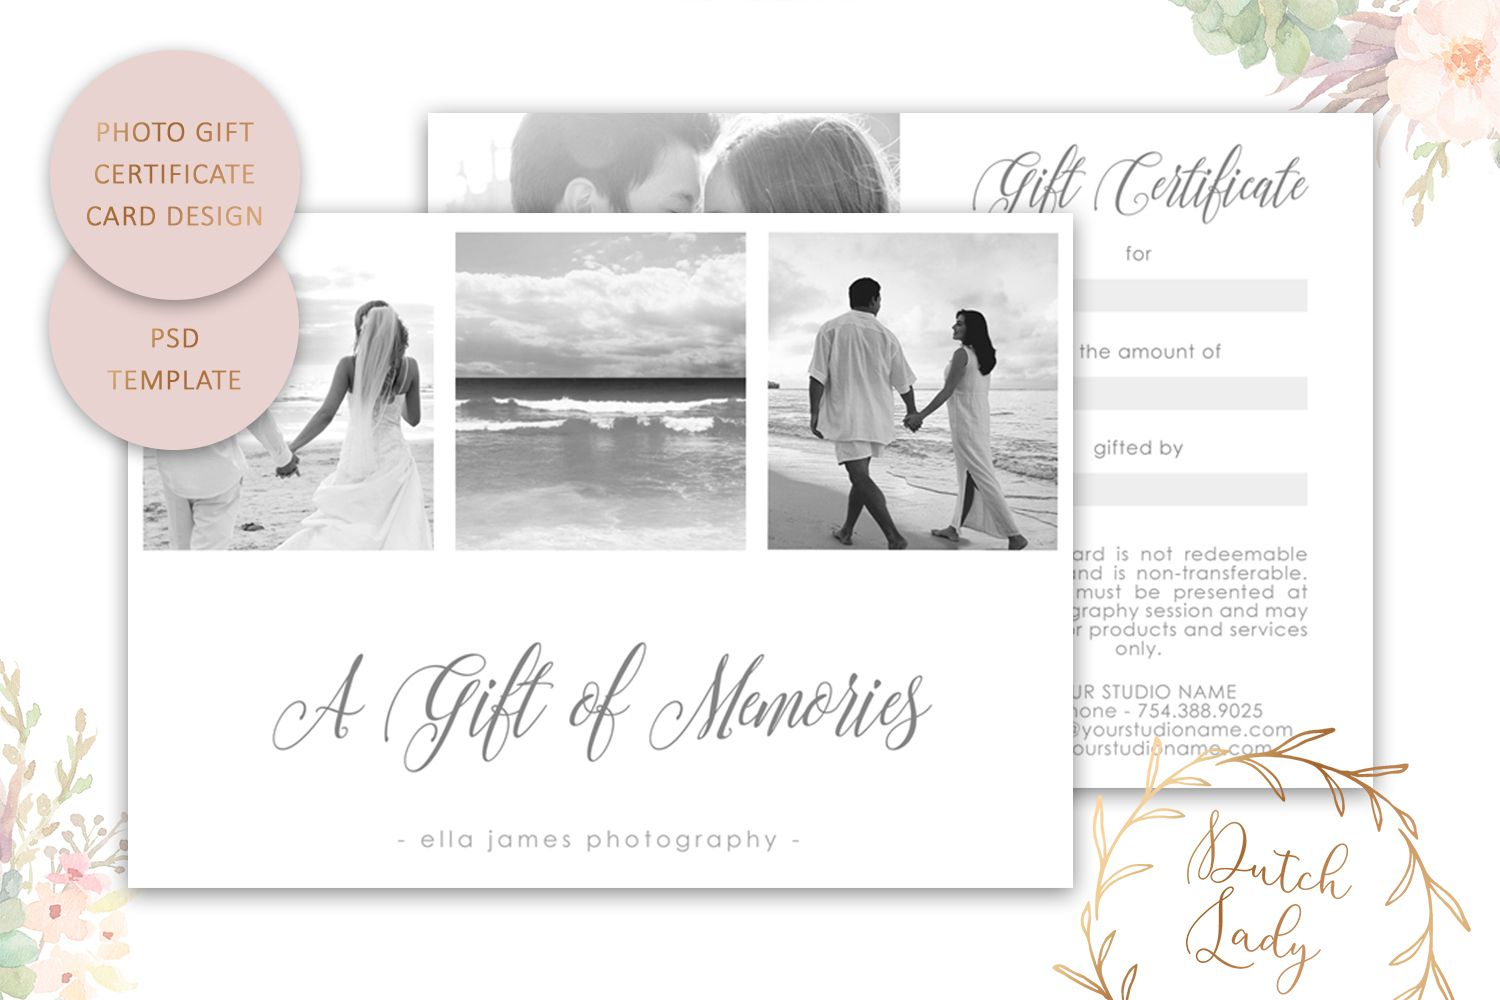 008 Remarkable Photography Session Gift Certificate Template Highest Quality  Photo FreeFull